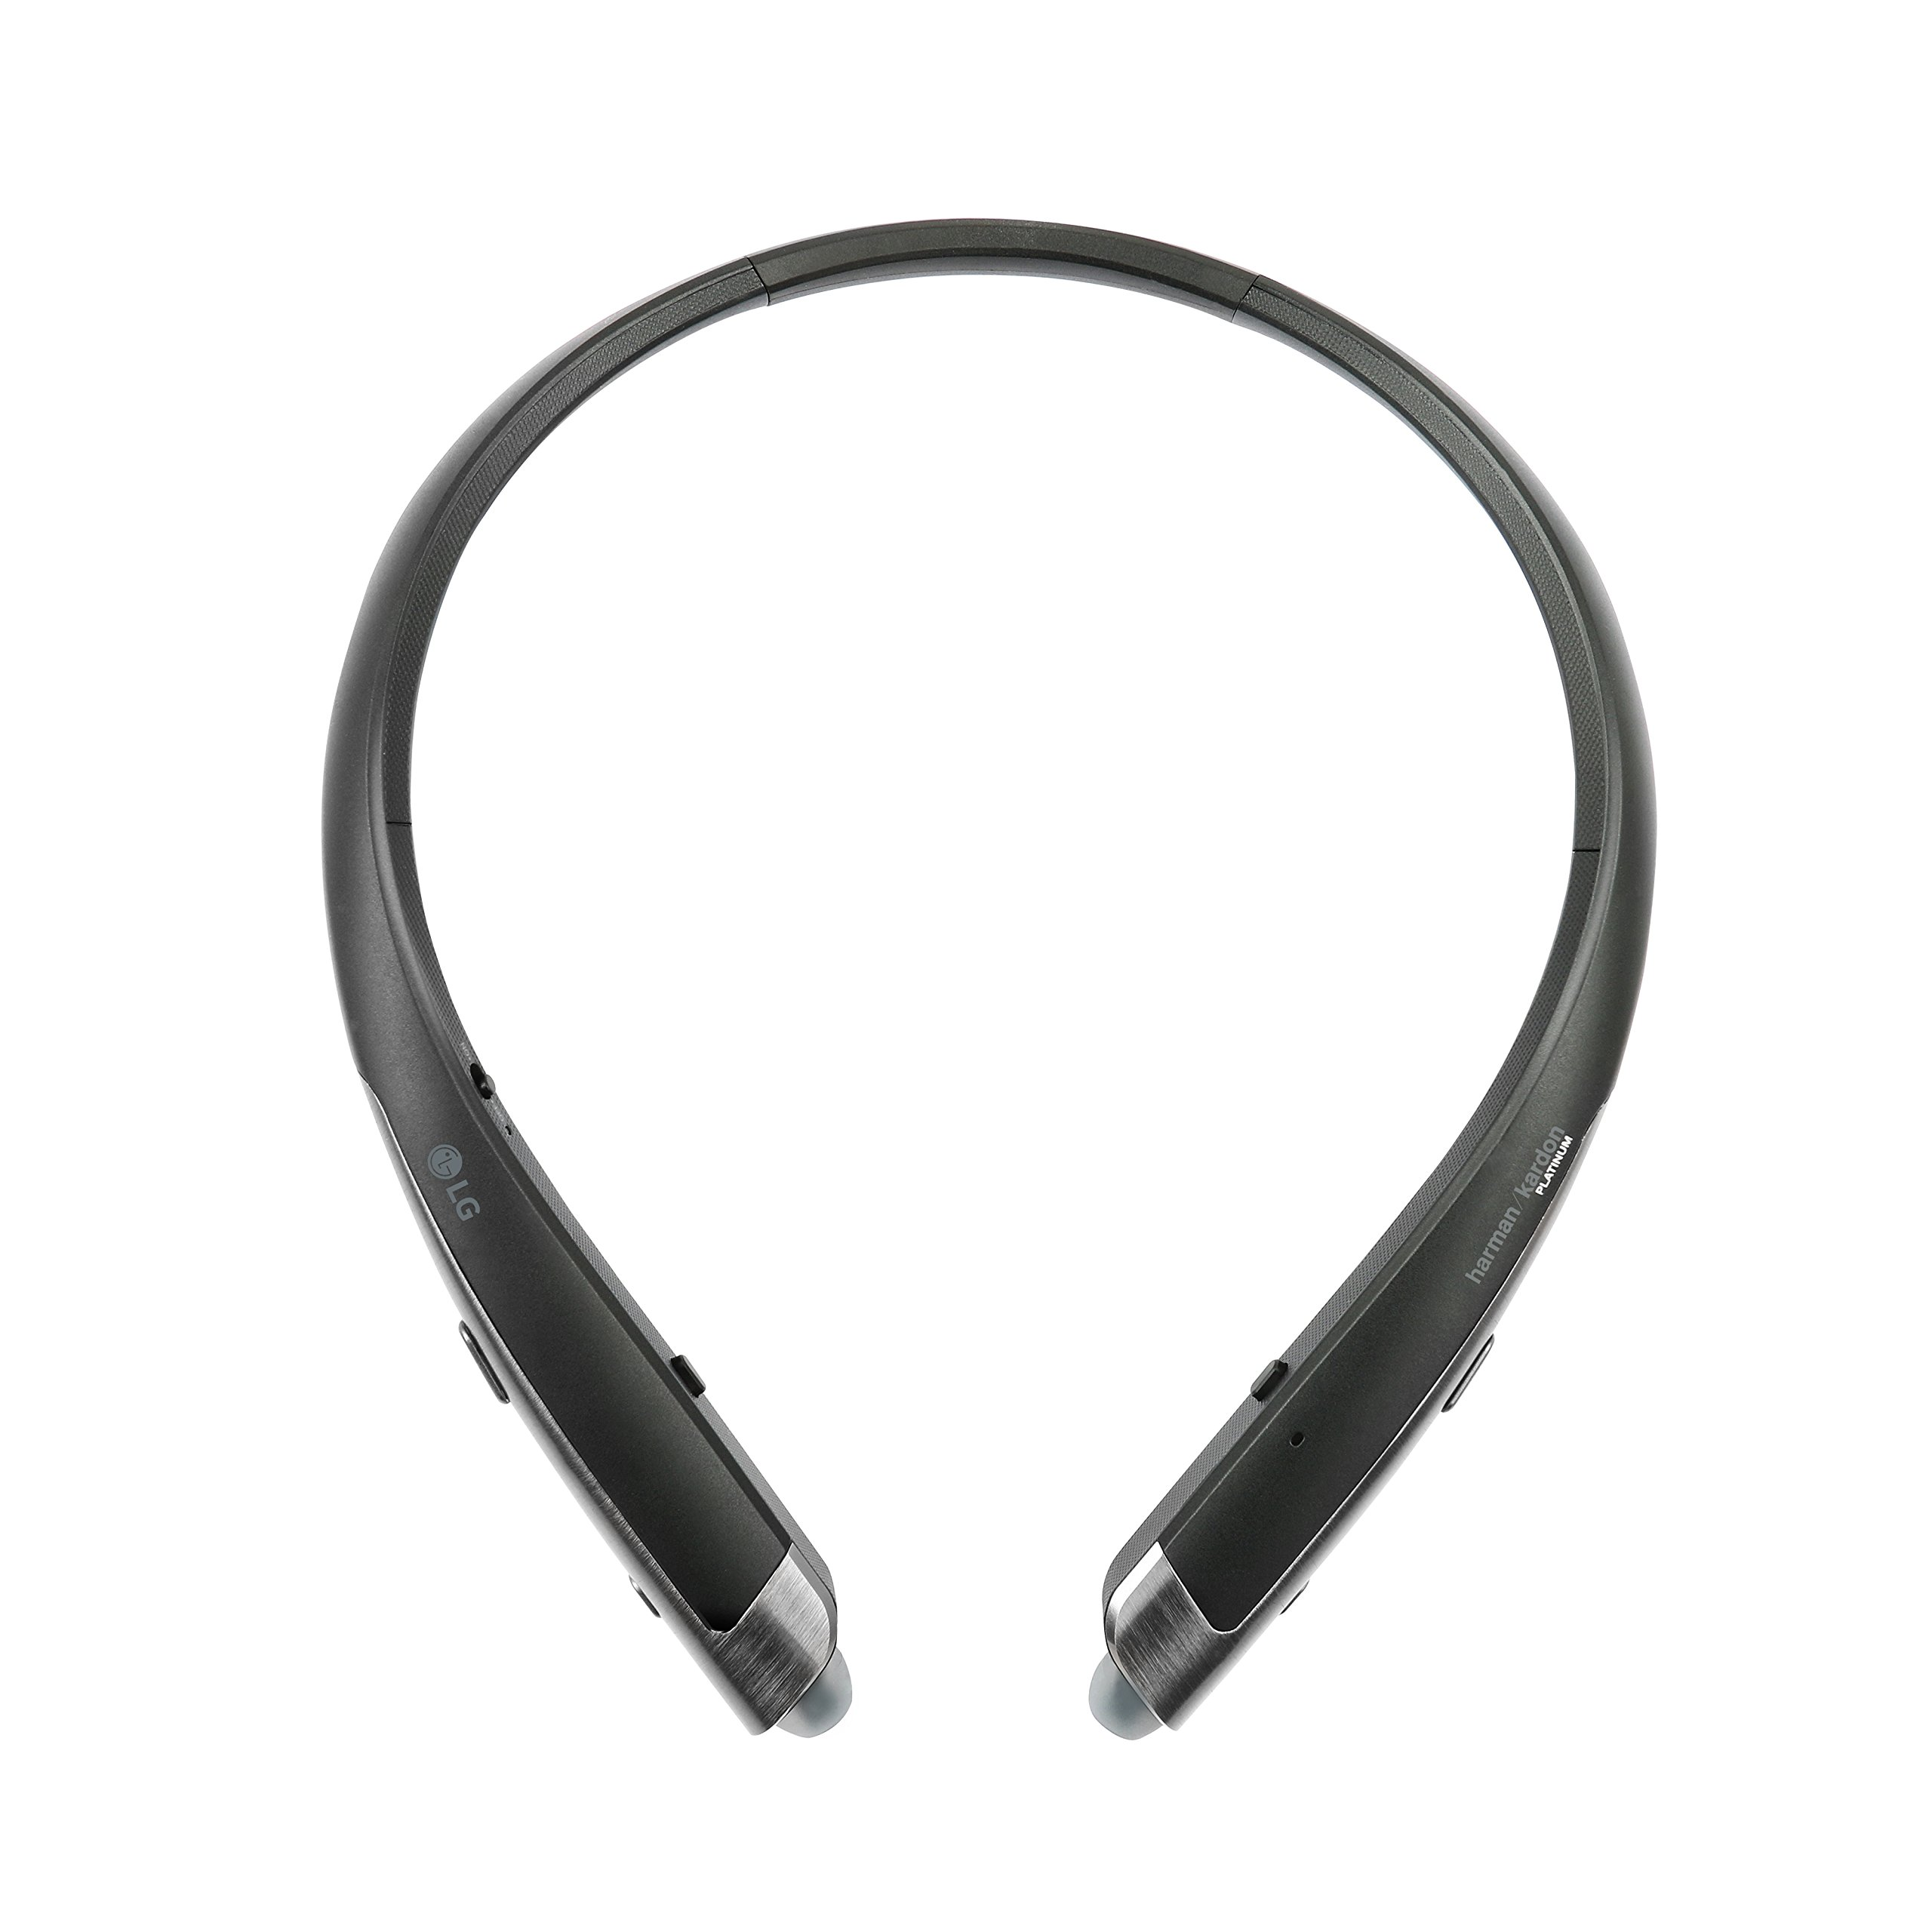 LG Friends Noise Cancelling Bluetooth Stereo Headset HBS-1100, Black - International Version